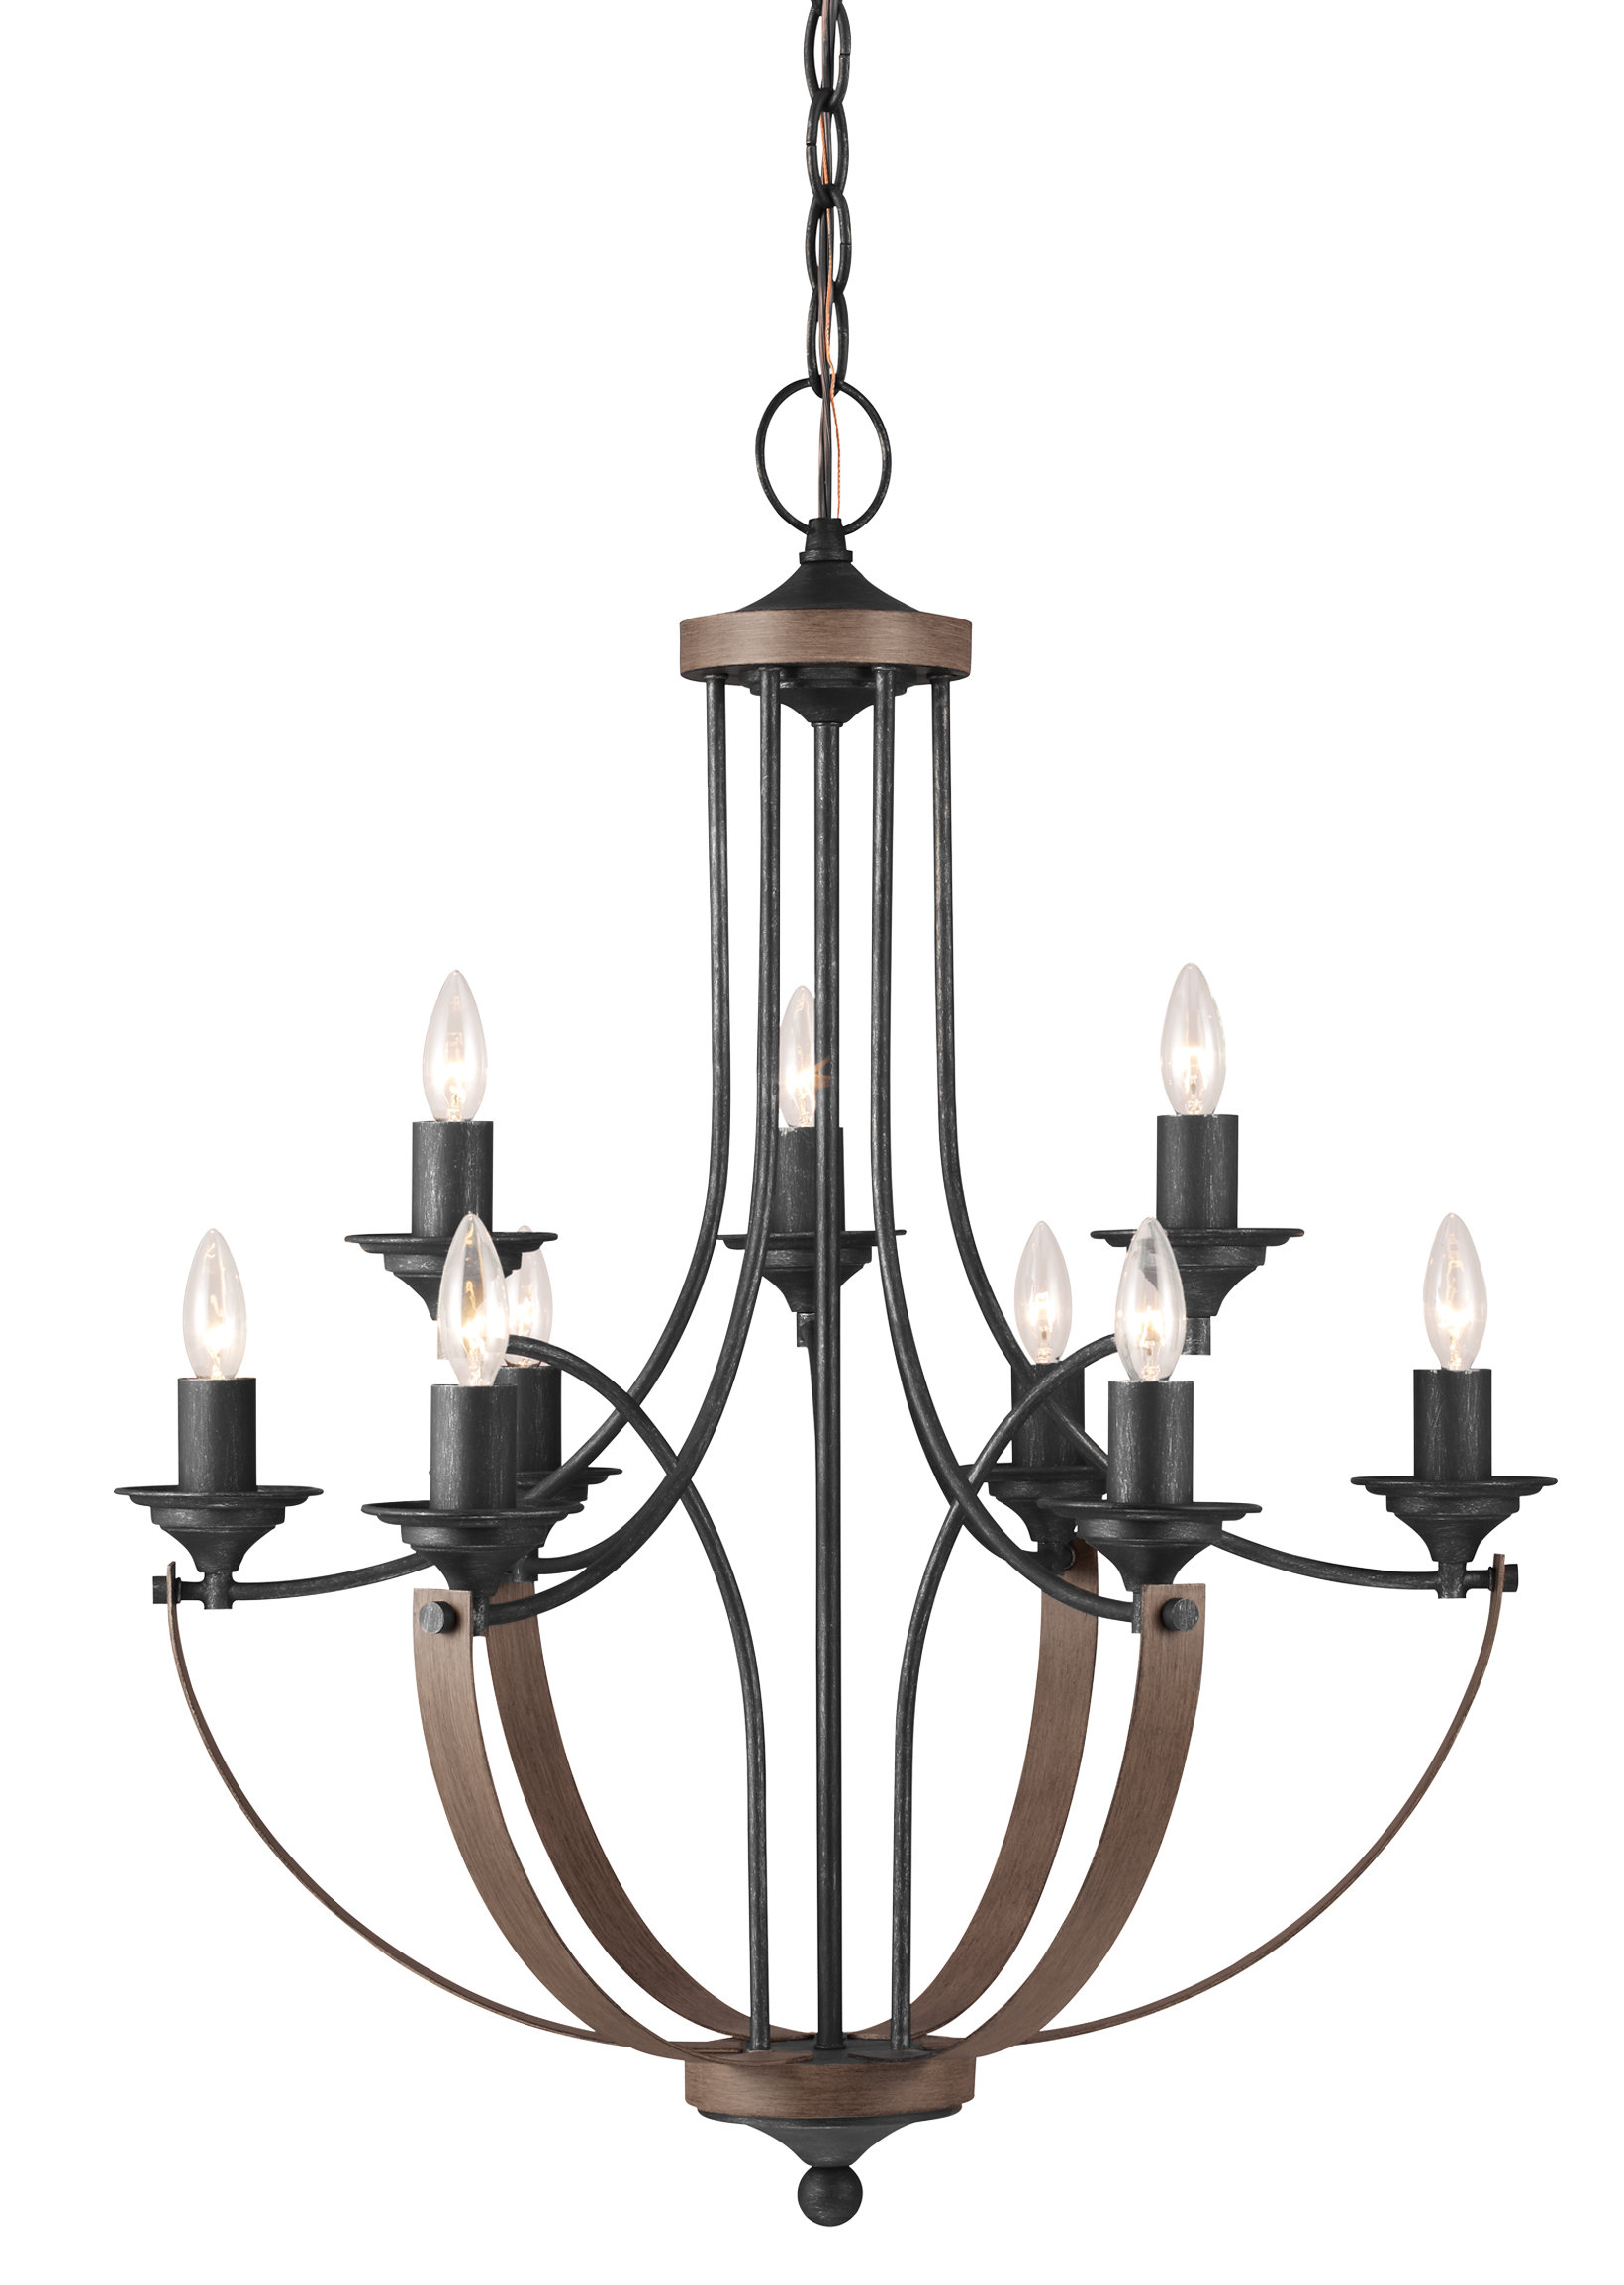 Latest Kenna 5 Light Empire Chandeliers Intended For Kenna 9 Light Empire Chandelier (Gallery 10 of 20)